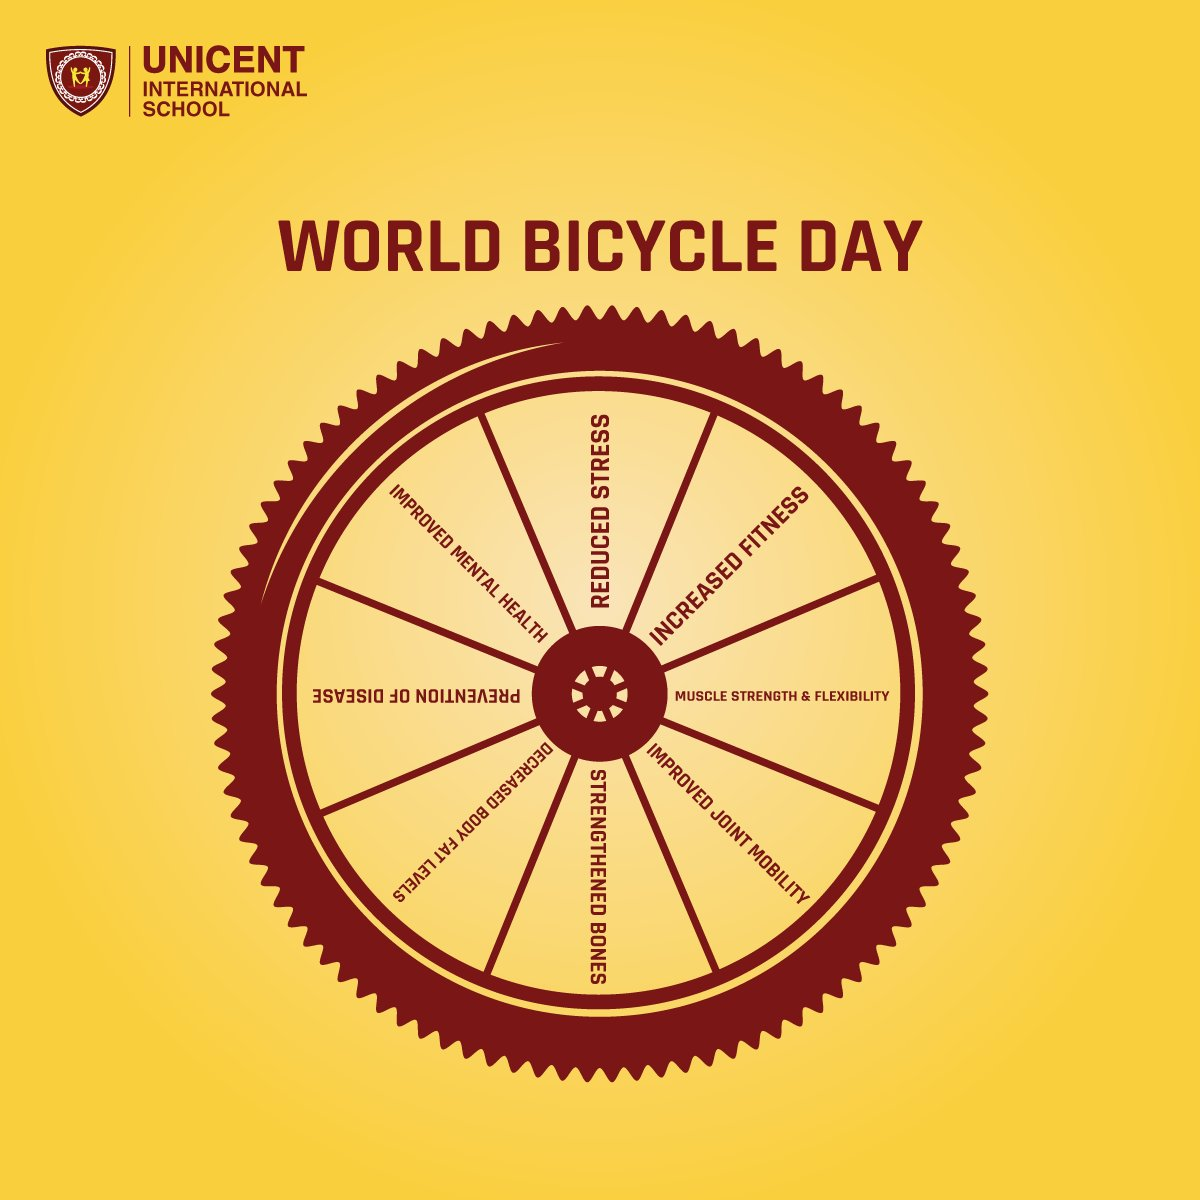 Zoom in to view the health benefits of regular cycling.  #UnicentSchool #BicycleDay #Healthy #Fit pic.twitter.com/ADVsim9f3Z